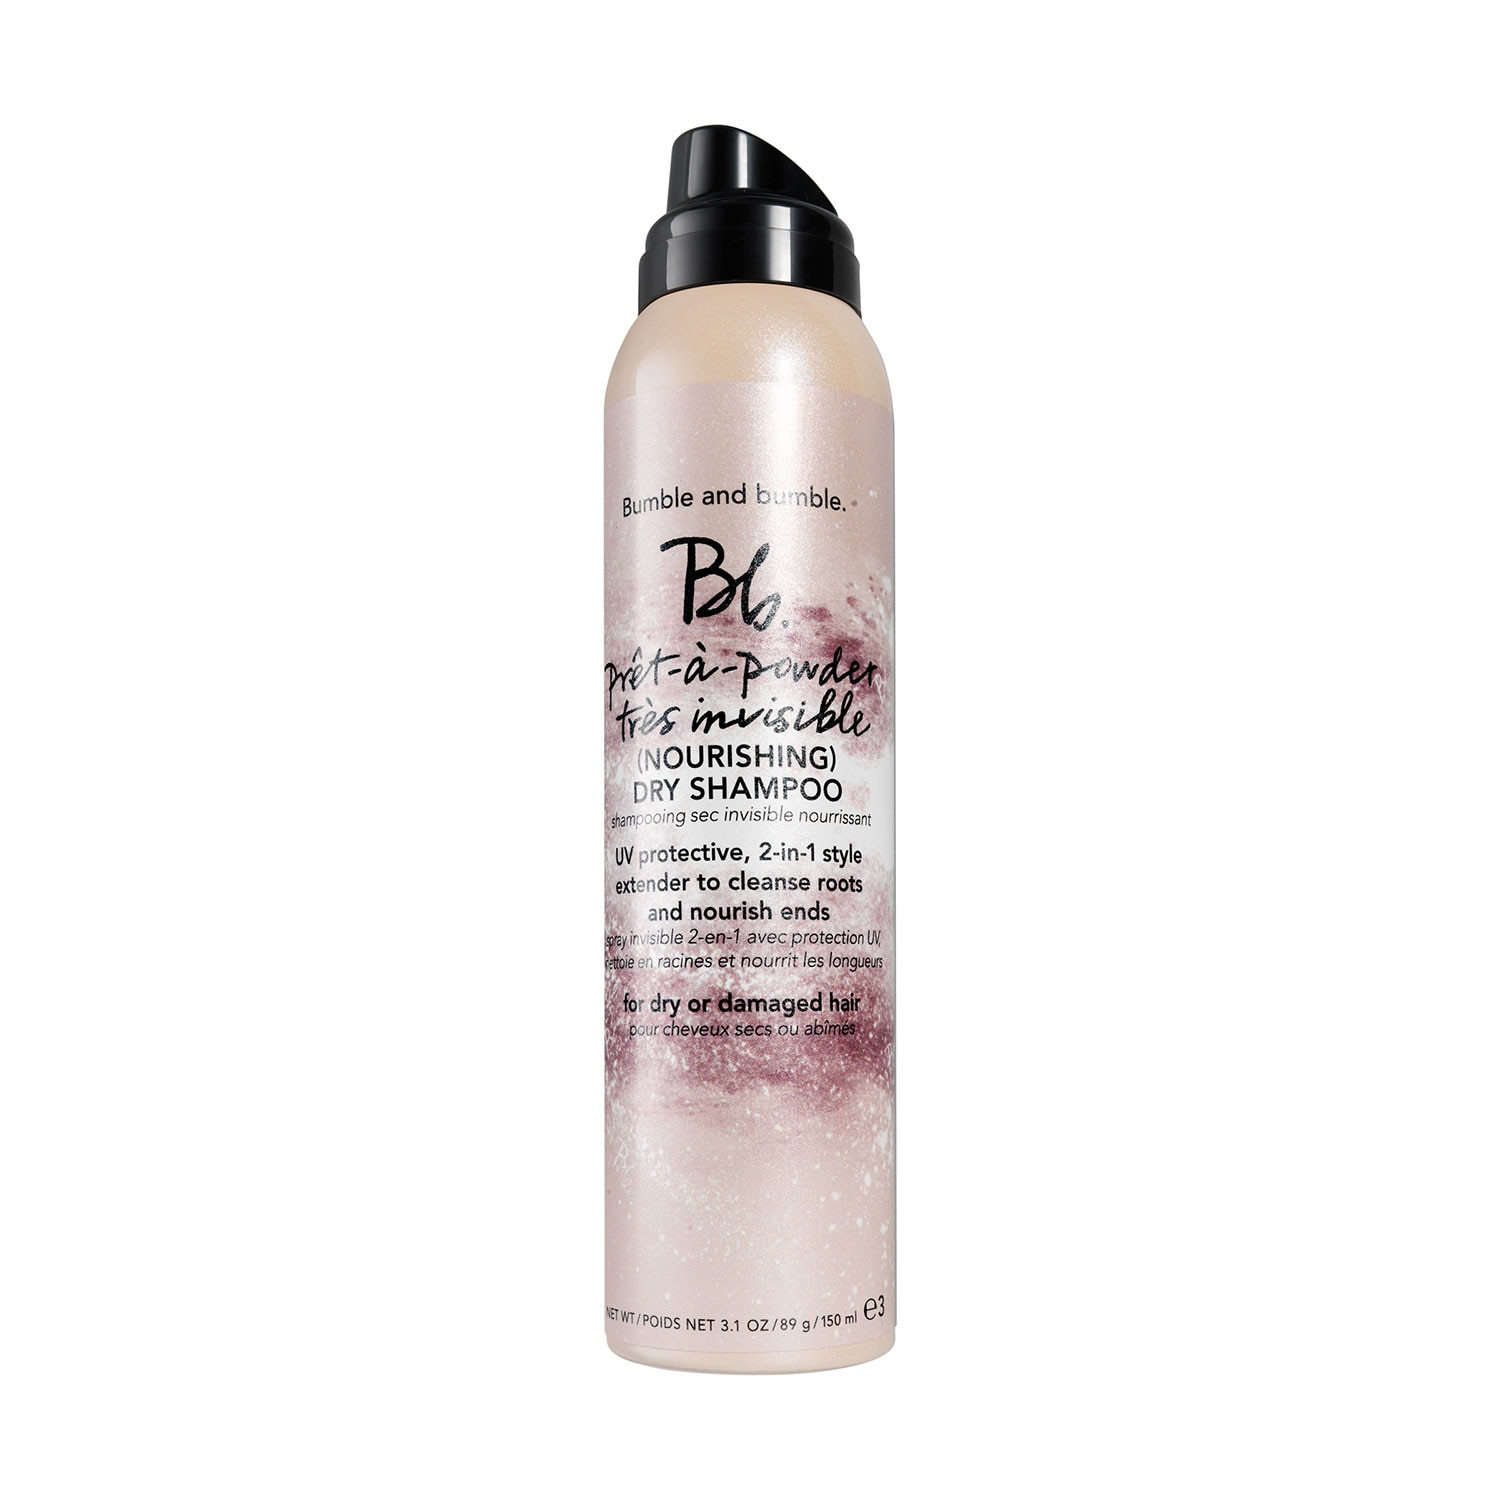 SHAMPOO EN SECO EN SPRAY PRETAPOWDER TRES INVISIBLE NOURISHING 150ML